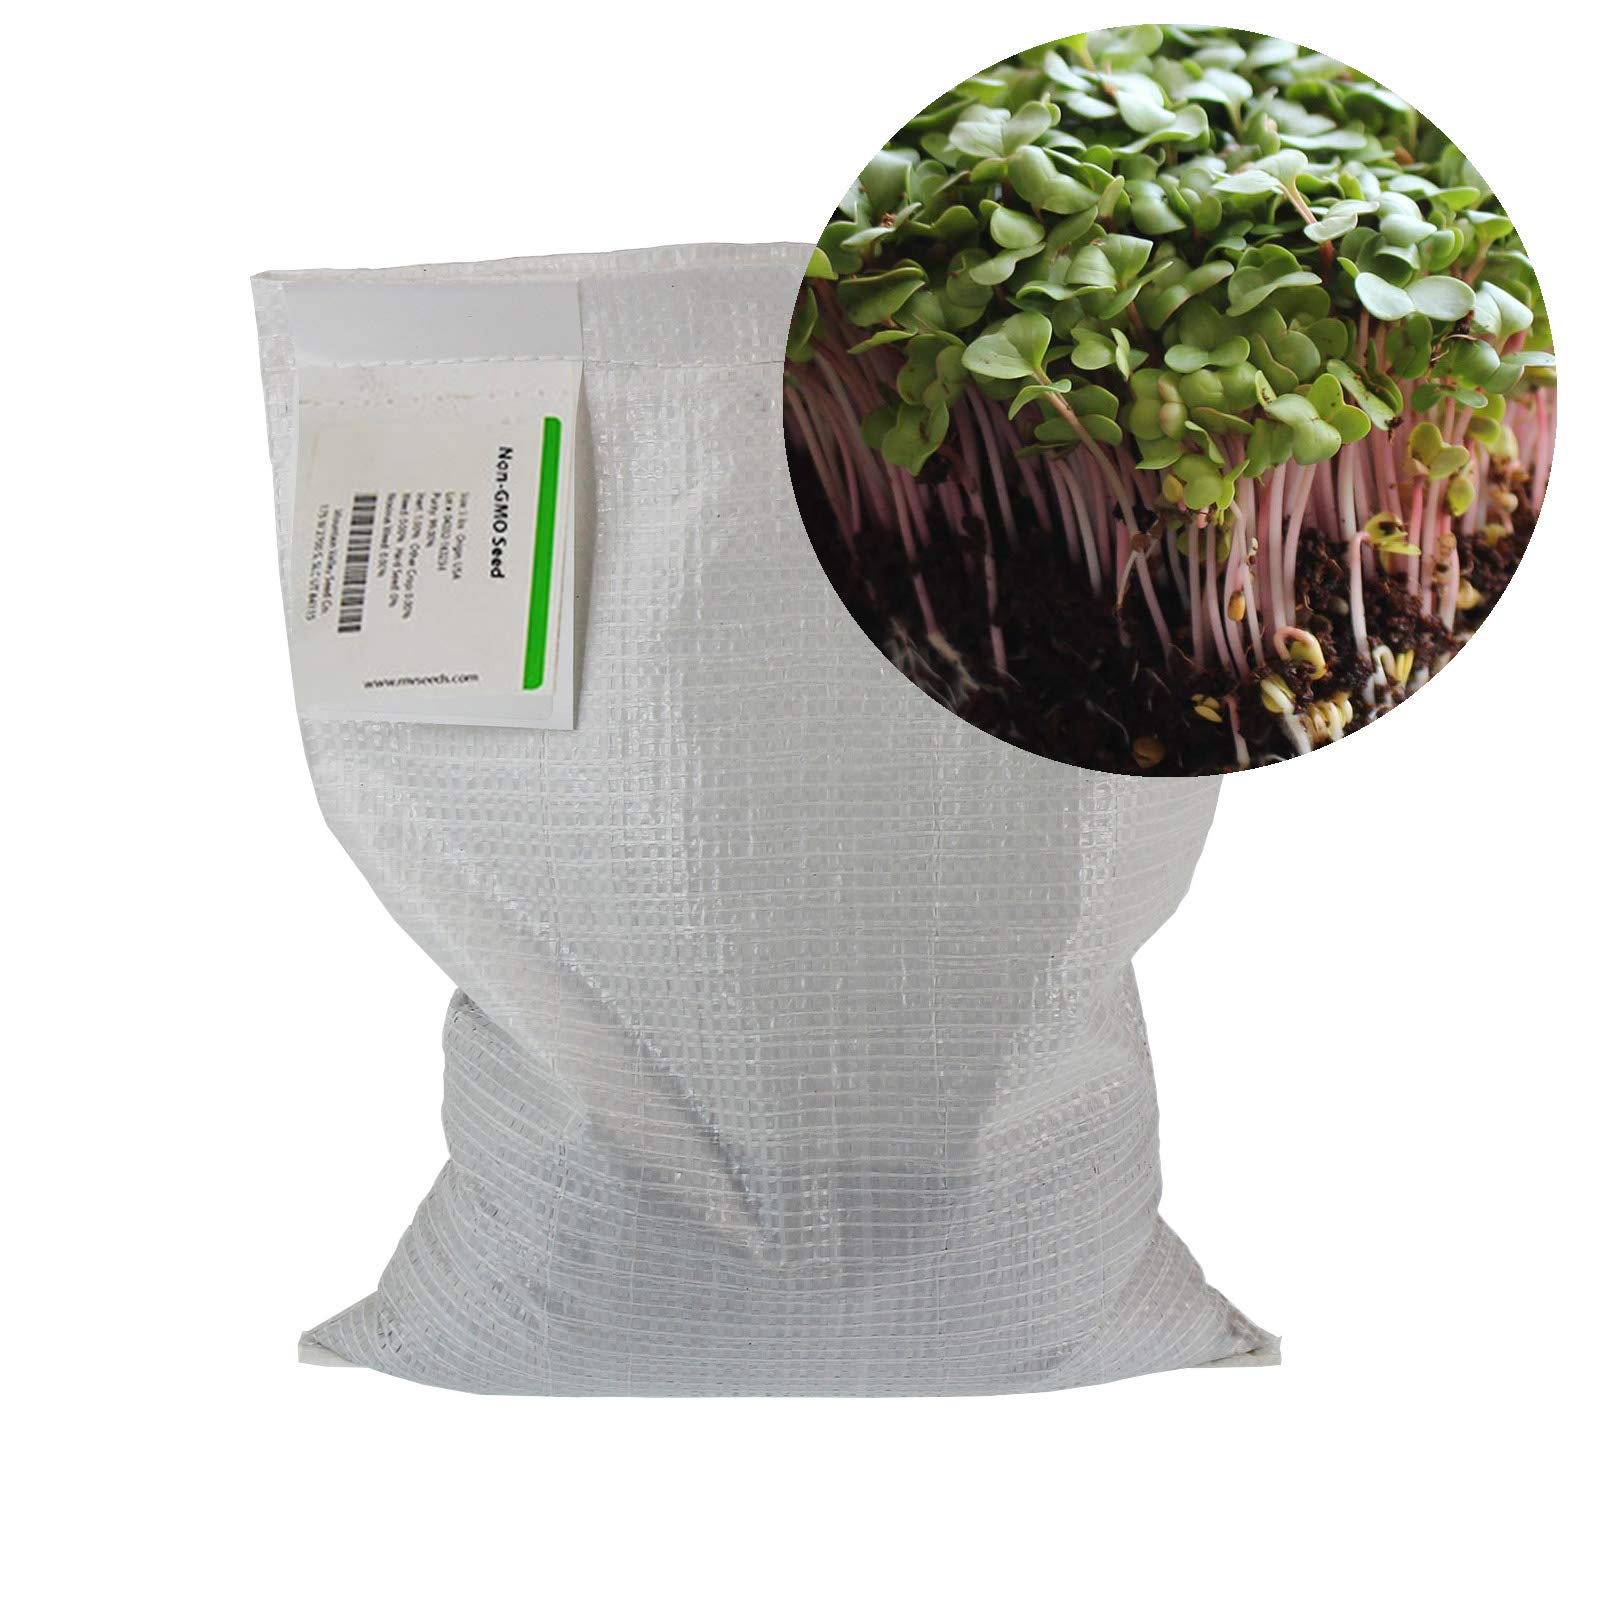 Radish Sprouting Seed - Red Arrow Variety - 5 Lb Bulk Seed - Heirloom Radish Sprouts - Non-GMO Sprouting and Micro Radishes